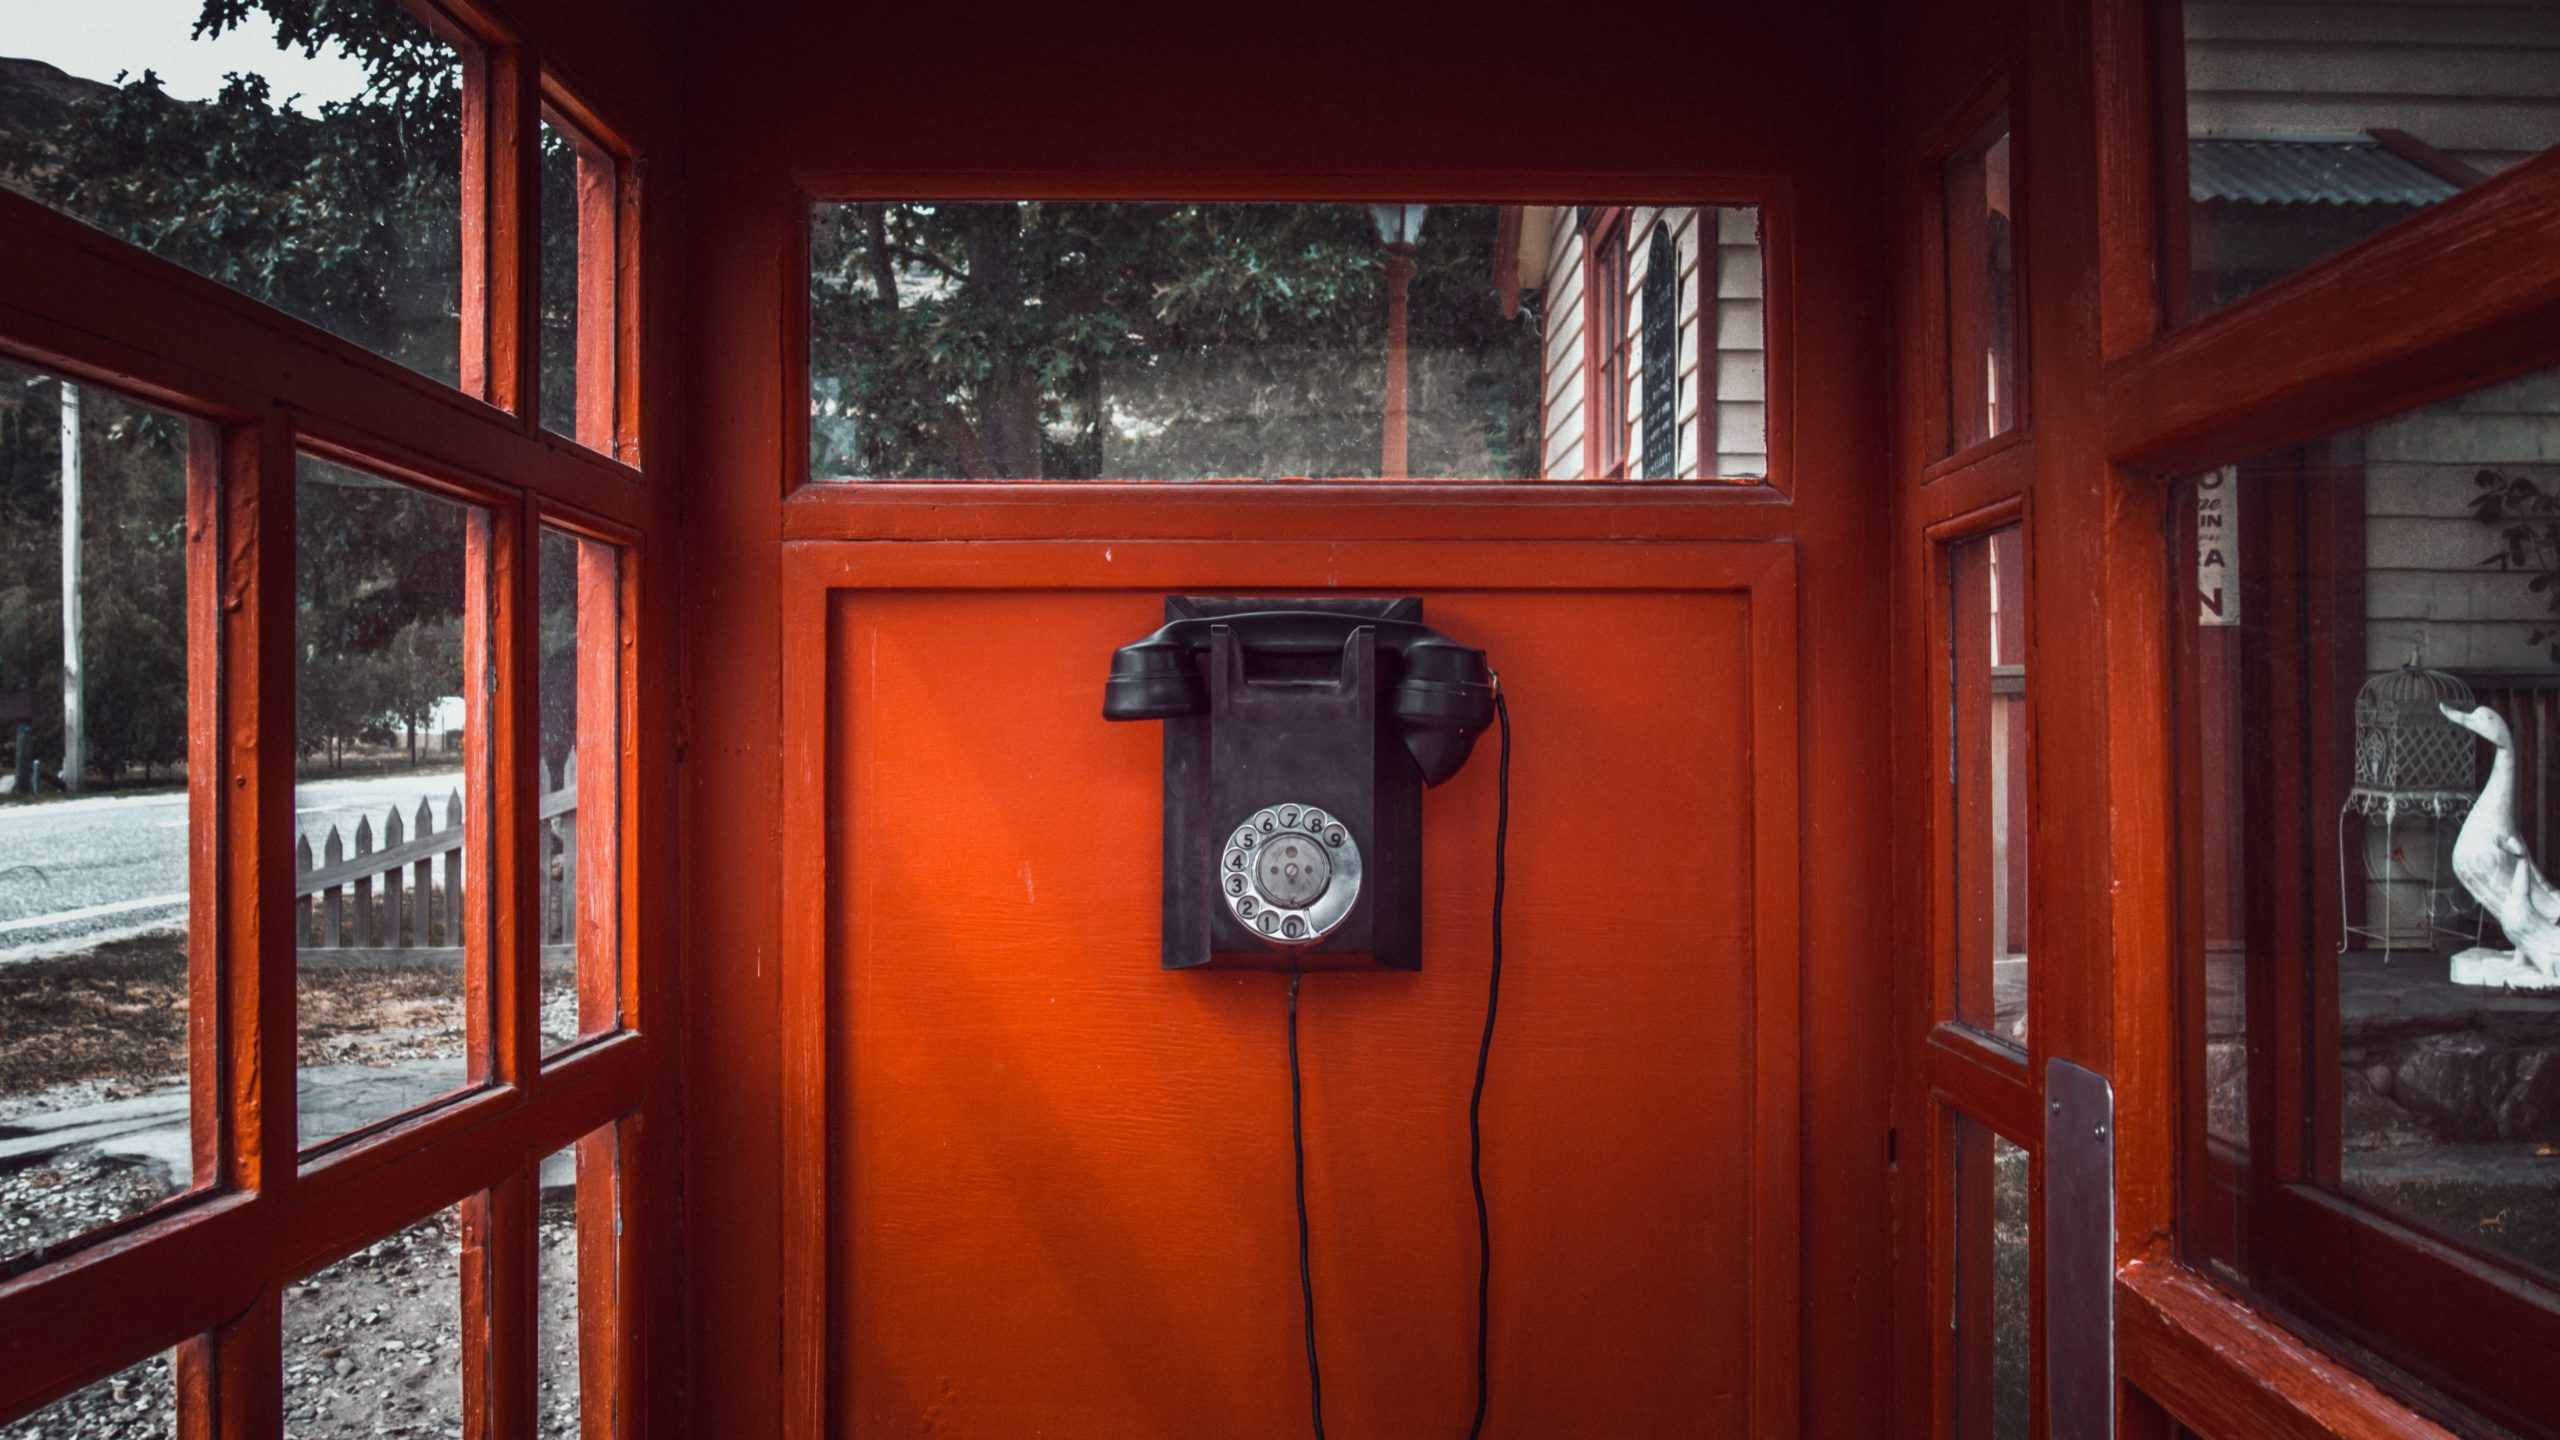 An old red telephone booth with a black dial phone in the center